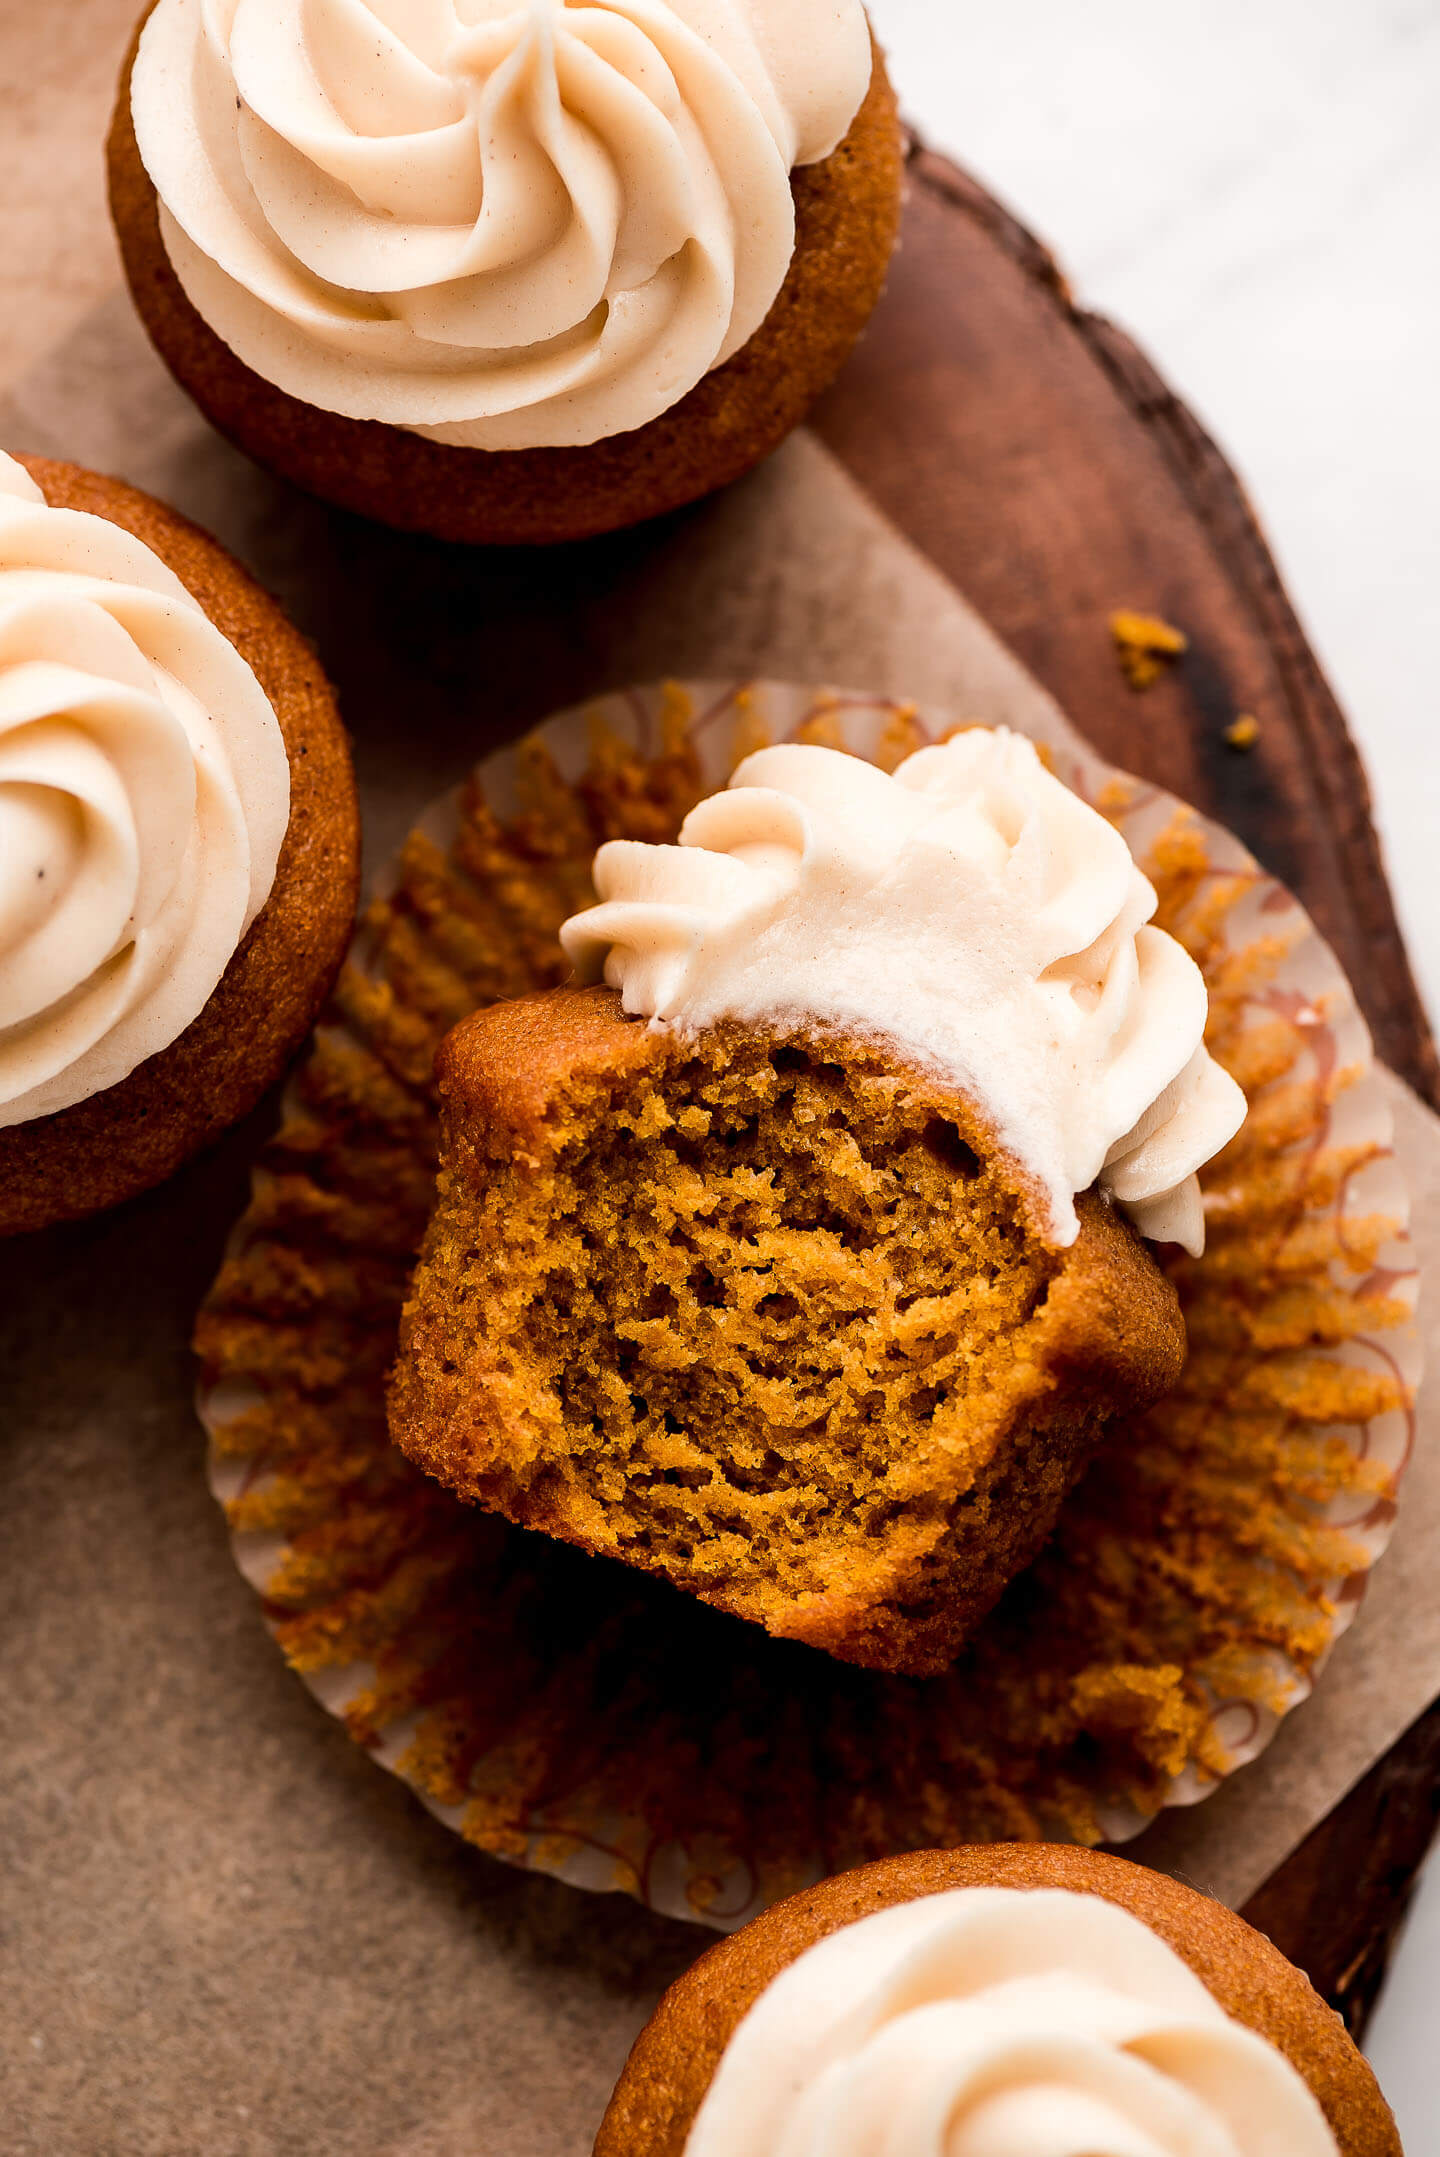 A Pumpkin Cupcake on its side with a bite taken out, focusing on the fluffy crumb interior.